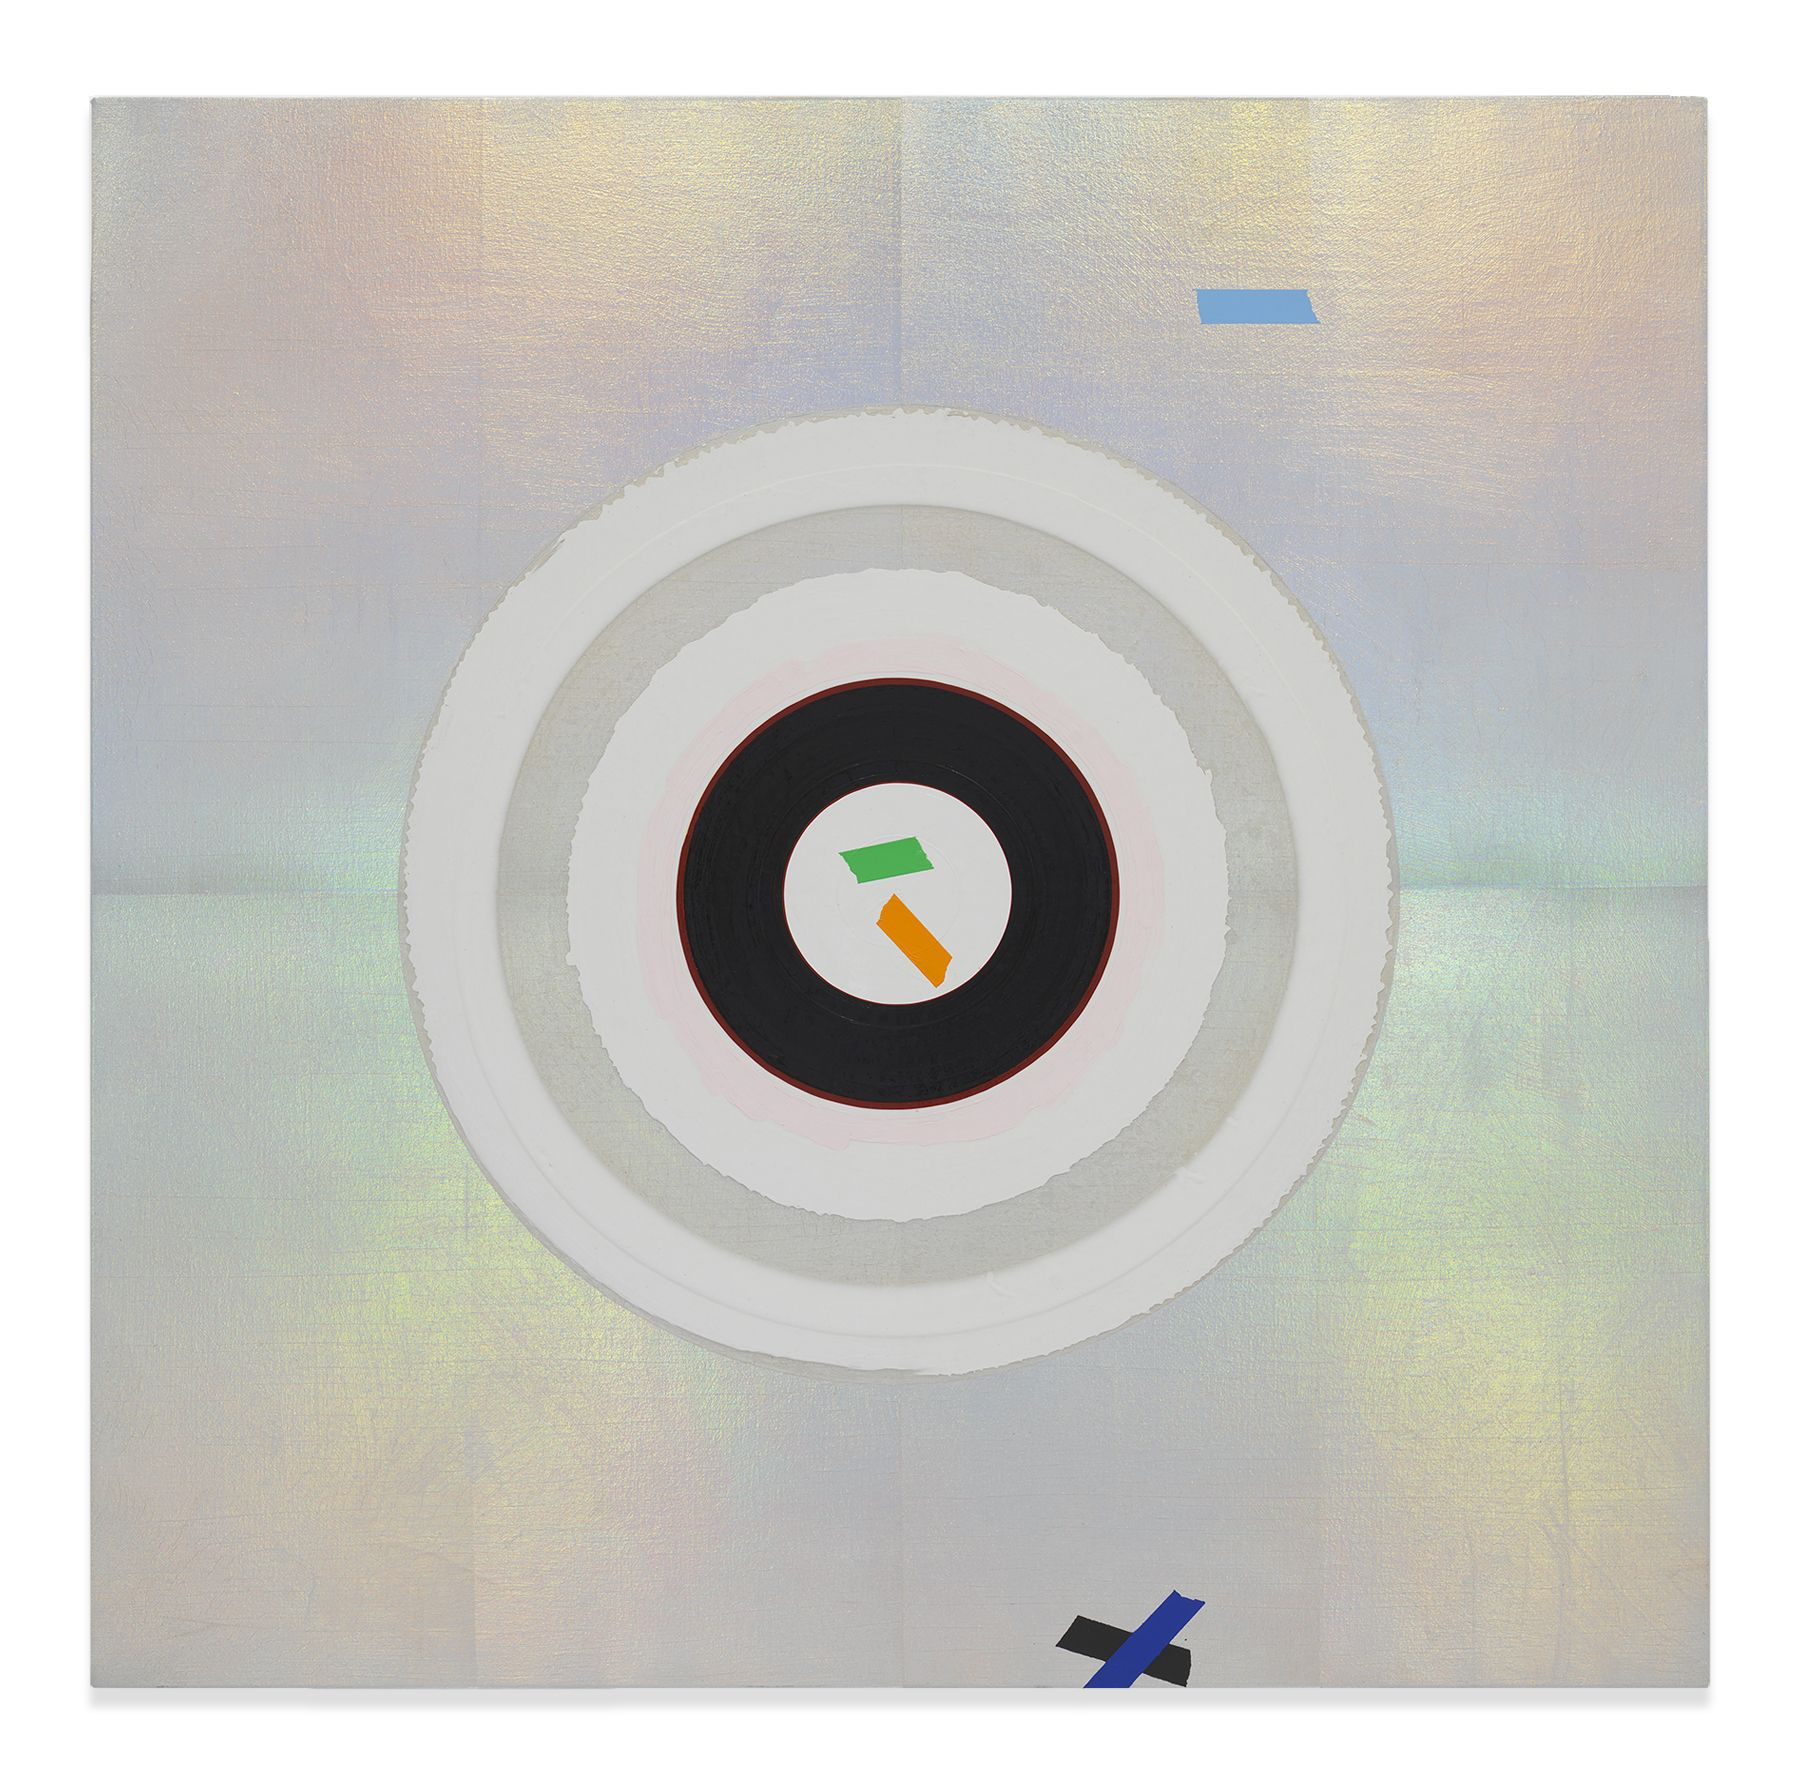 Kenneth Noland, Mysteries: Platinum, 1999, Acrylic on canvas, 46-1/2 by 46-1/2 inches, 118.1 by 118.1 cm